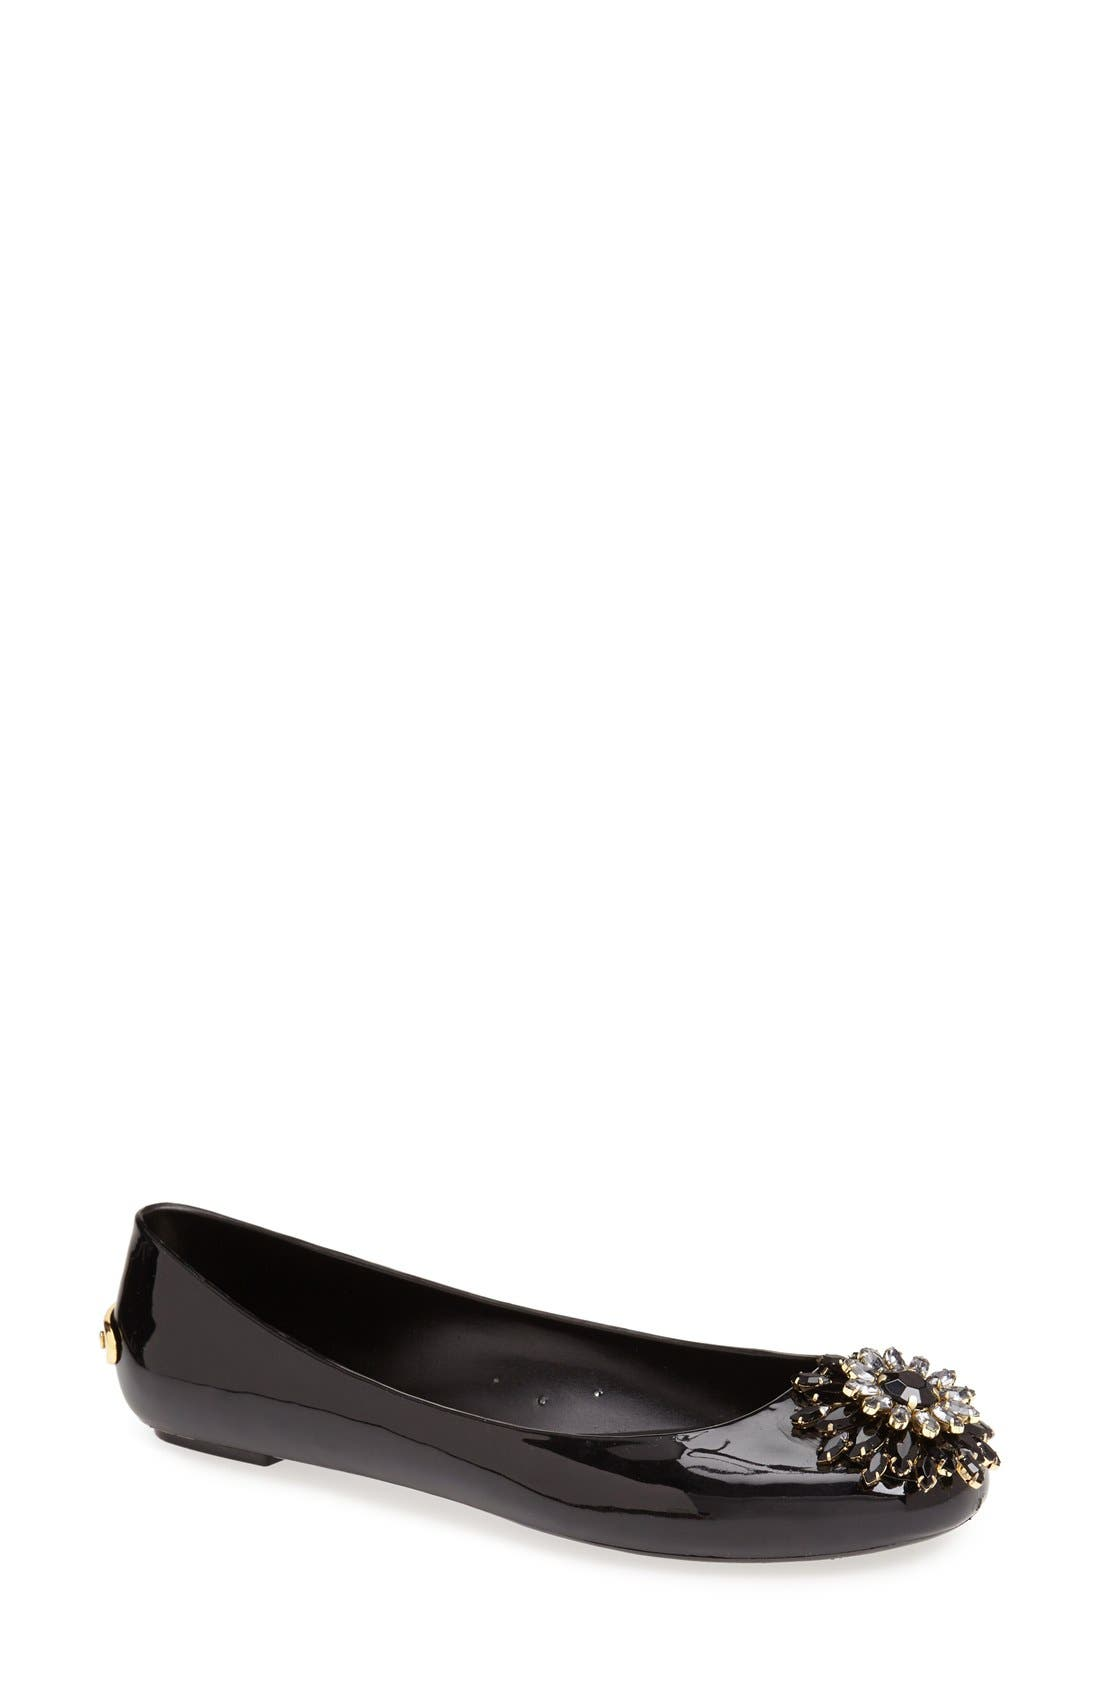 Alternate Image 1 Selected - Ted Baker London 'Anislee' Flat (Women)